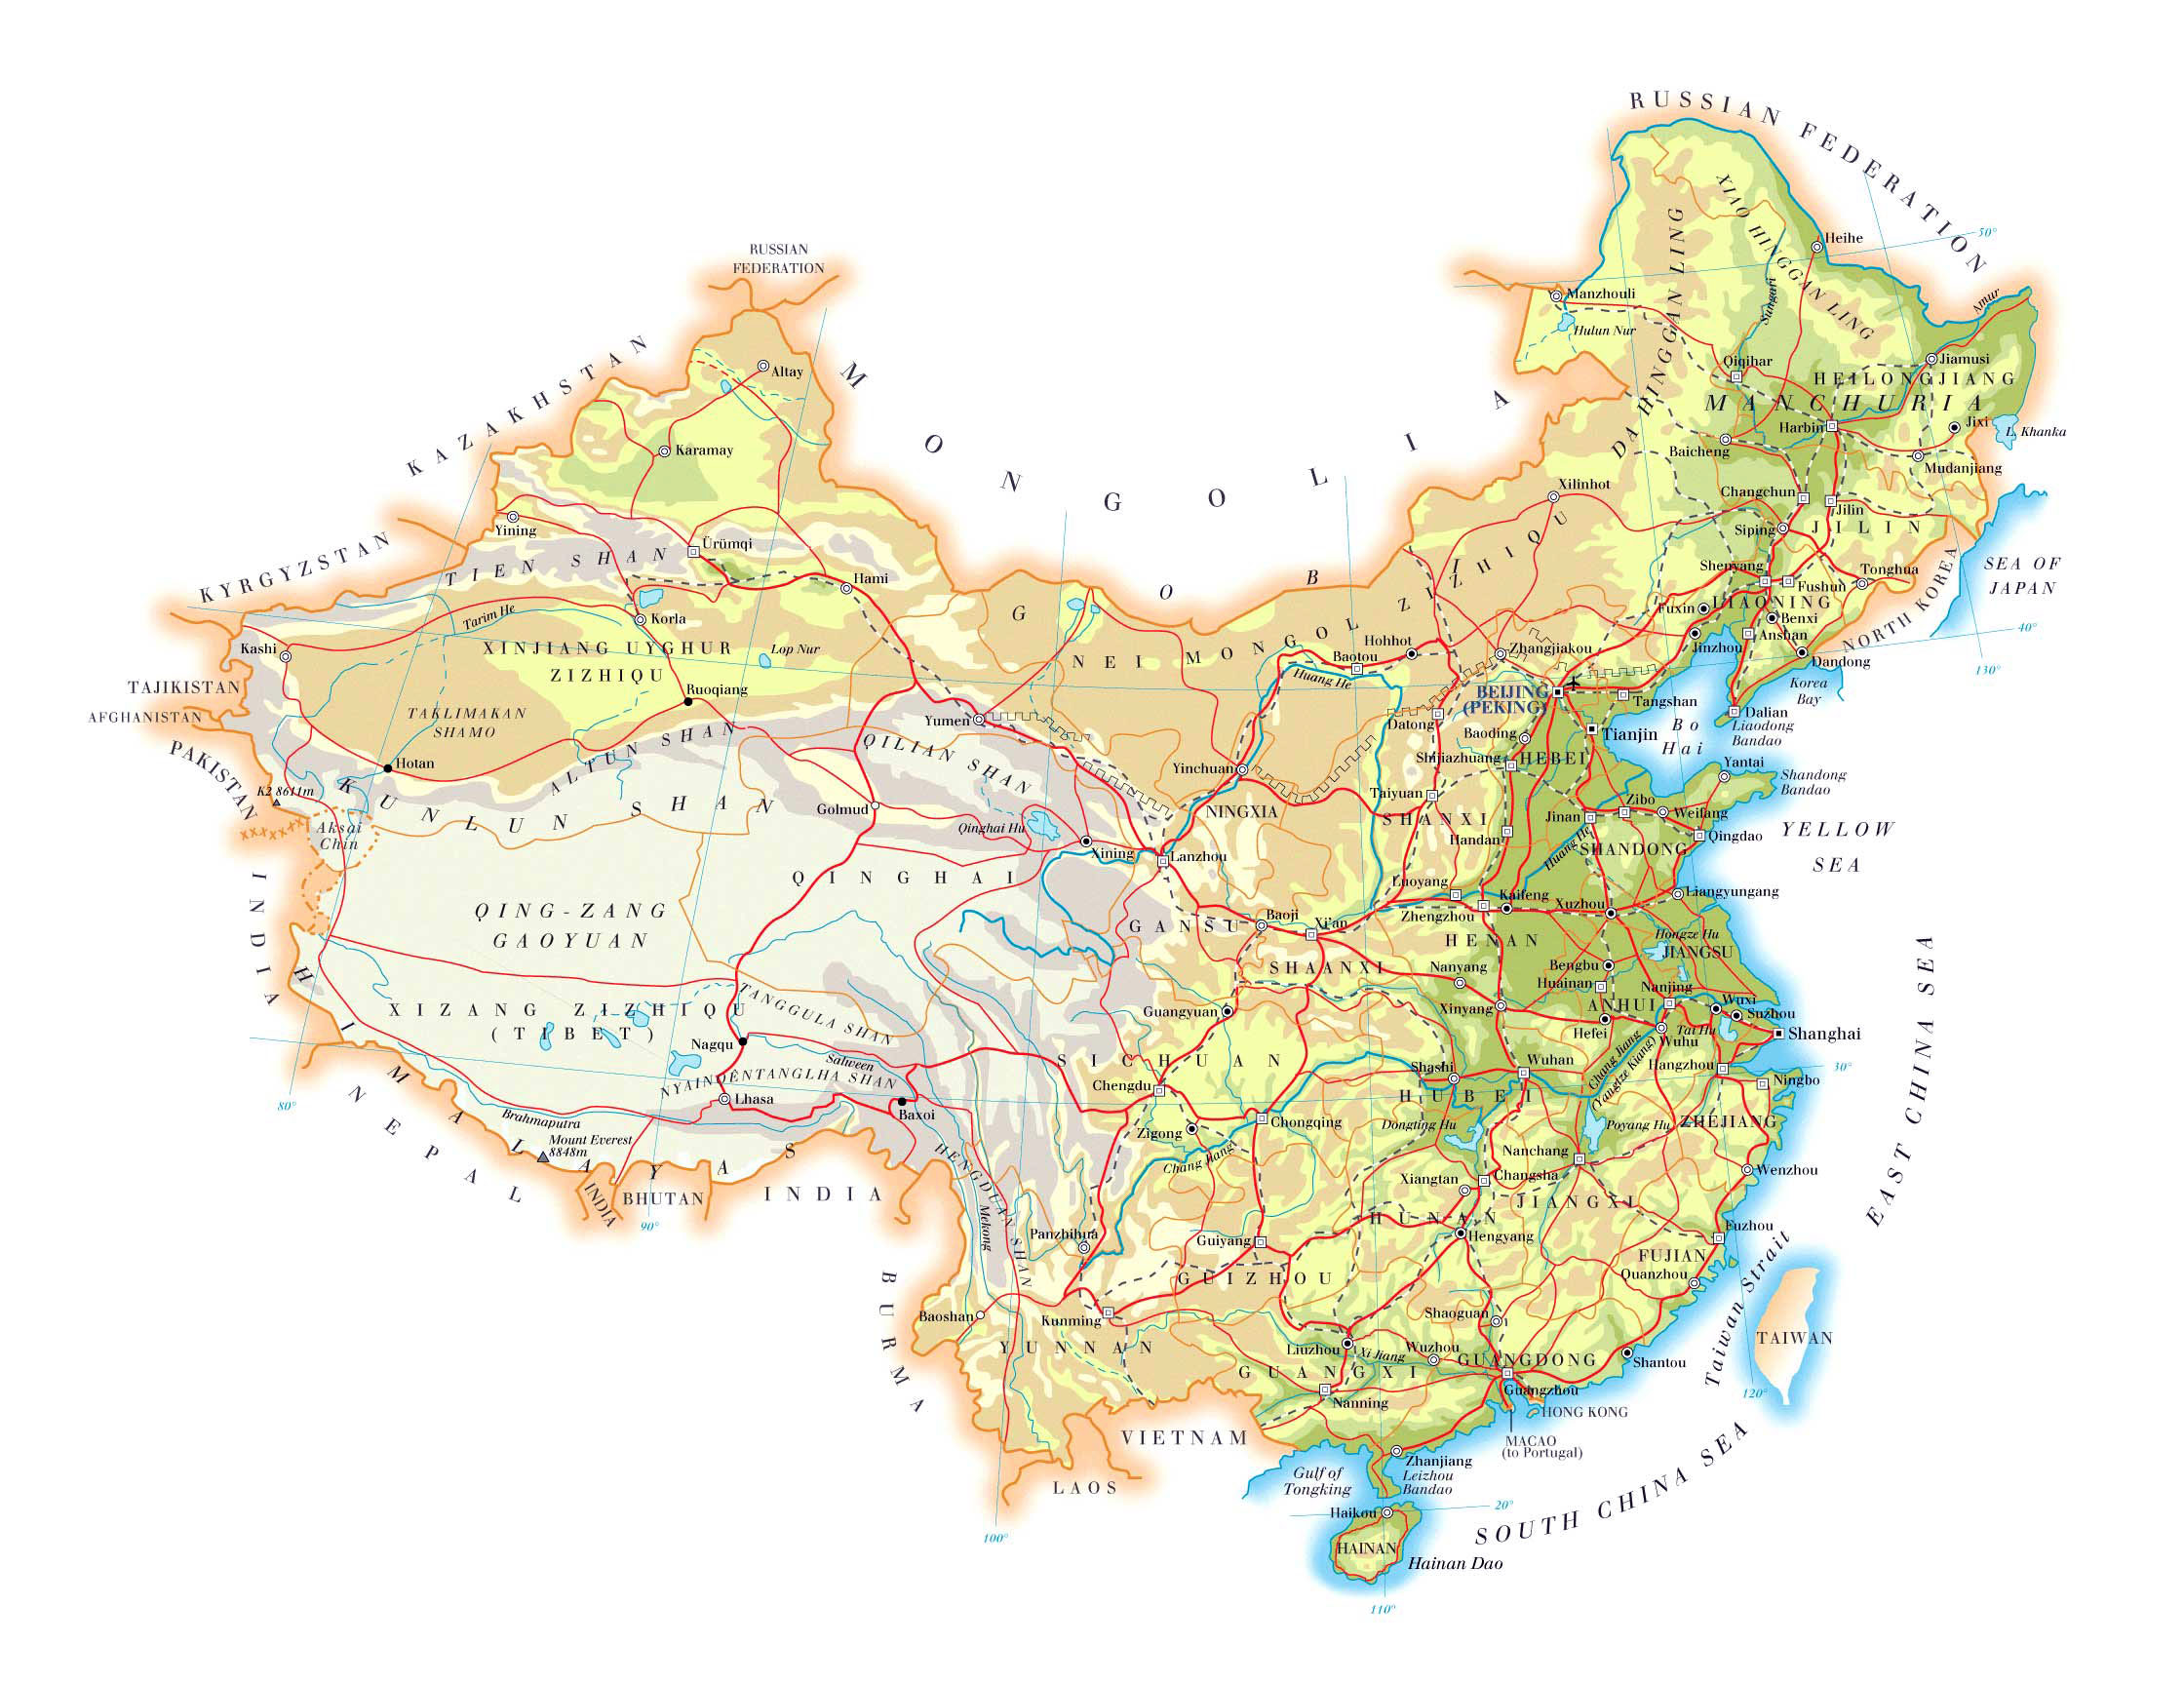 Detailed Physical Map Of China With Roads Cities And Airports - Cities map of china